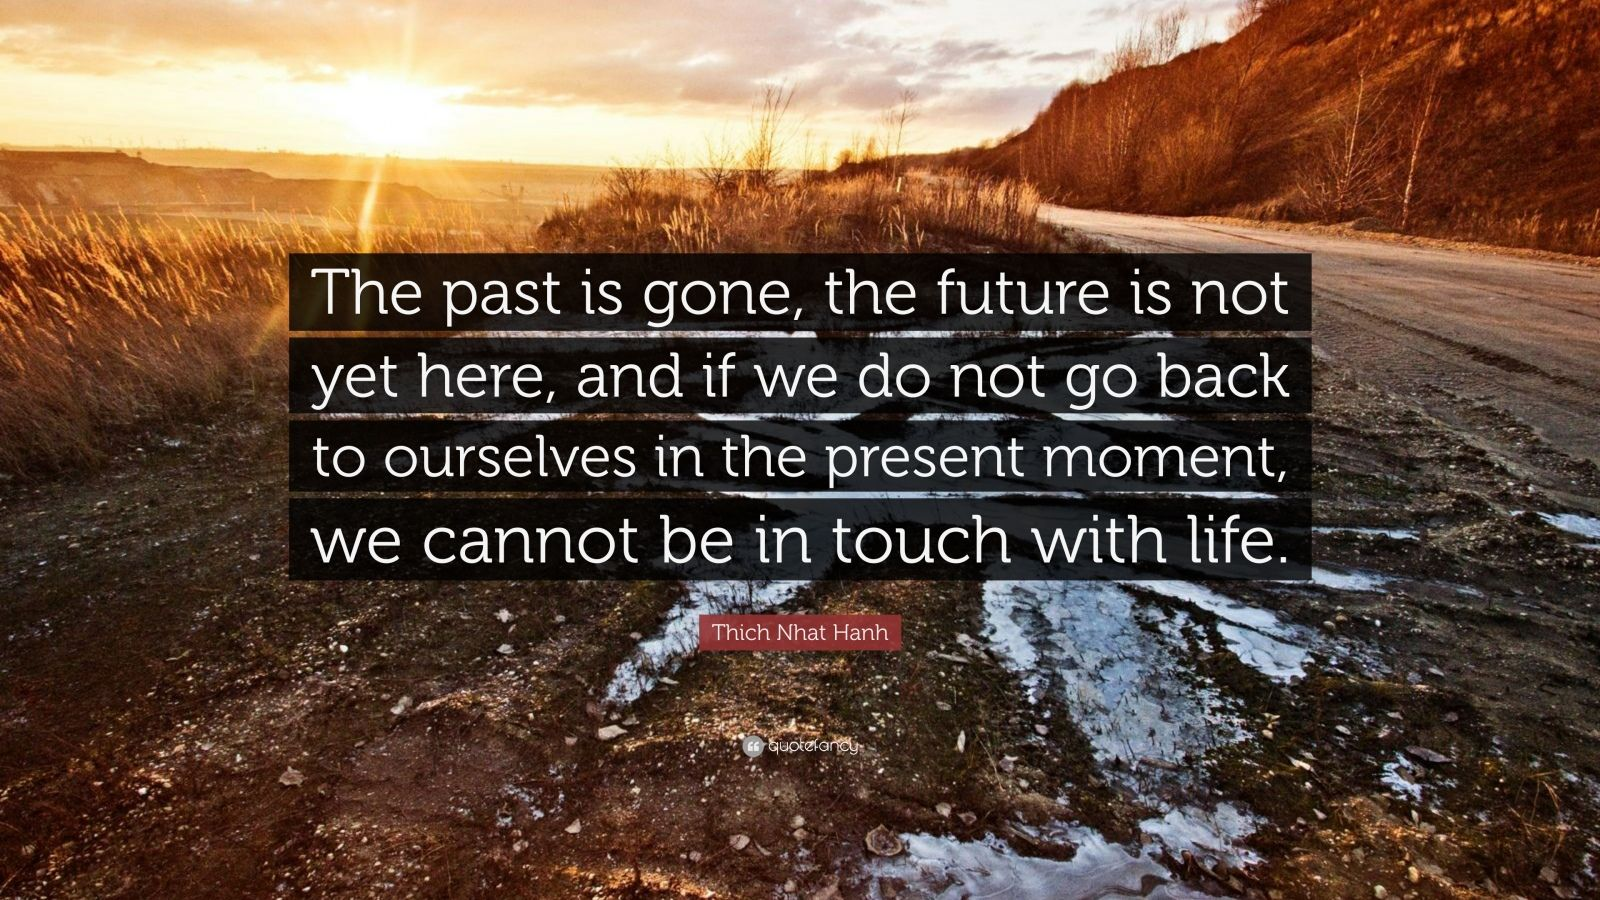 "Thich Nhat Hanh Quote: ""The past is gone, the future is not yet here, and if we do not go back to ourselves in the present moment, we cannot be in touch with life."""